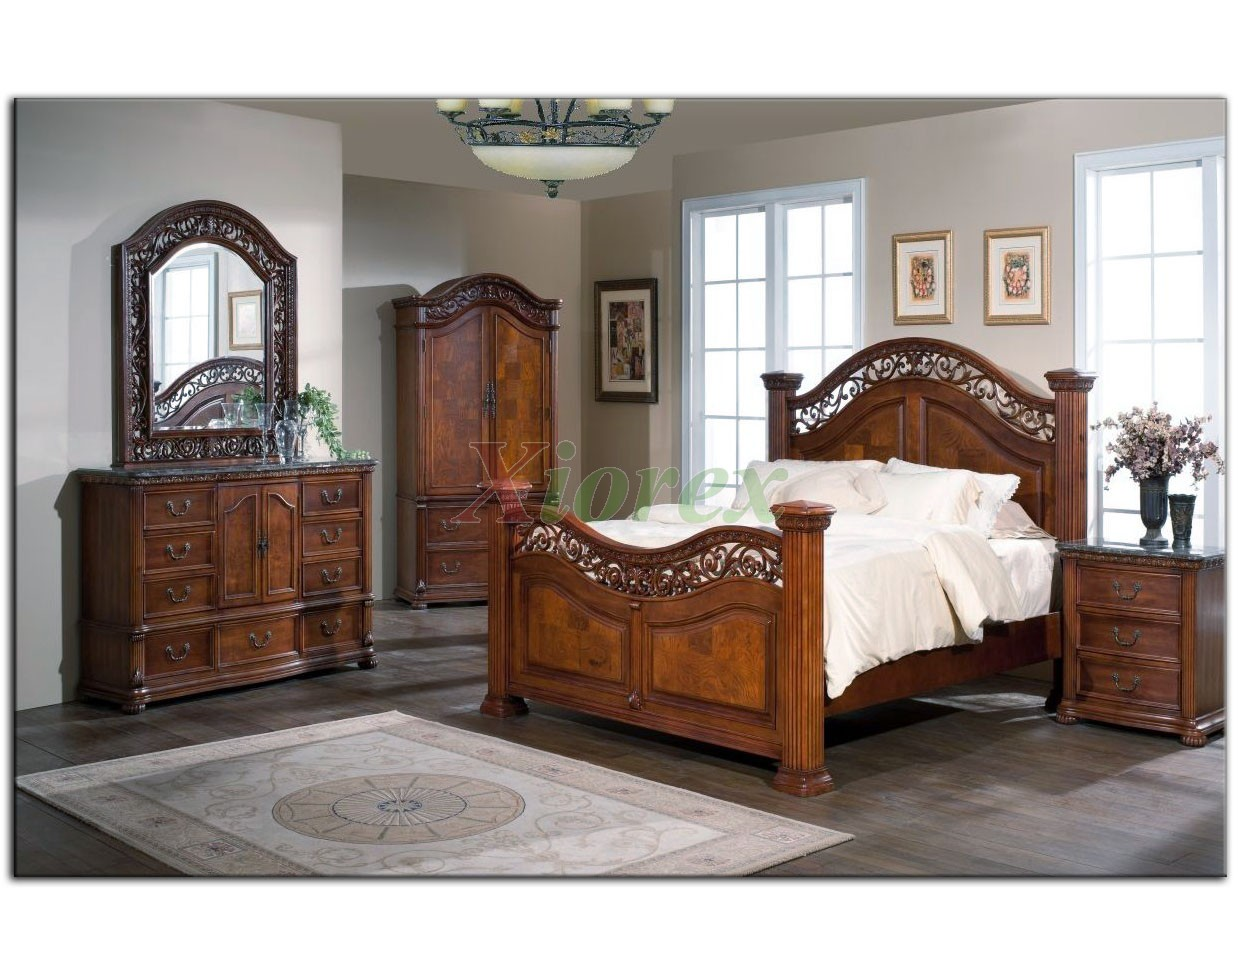 Poster bedroom furniture set 114 xiorex for Bedroom furnishings